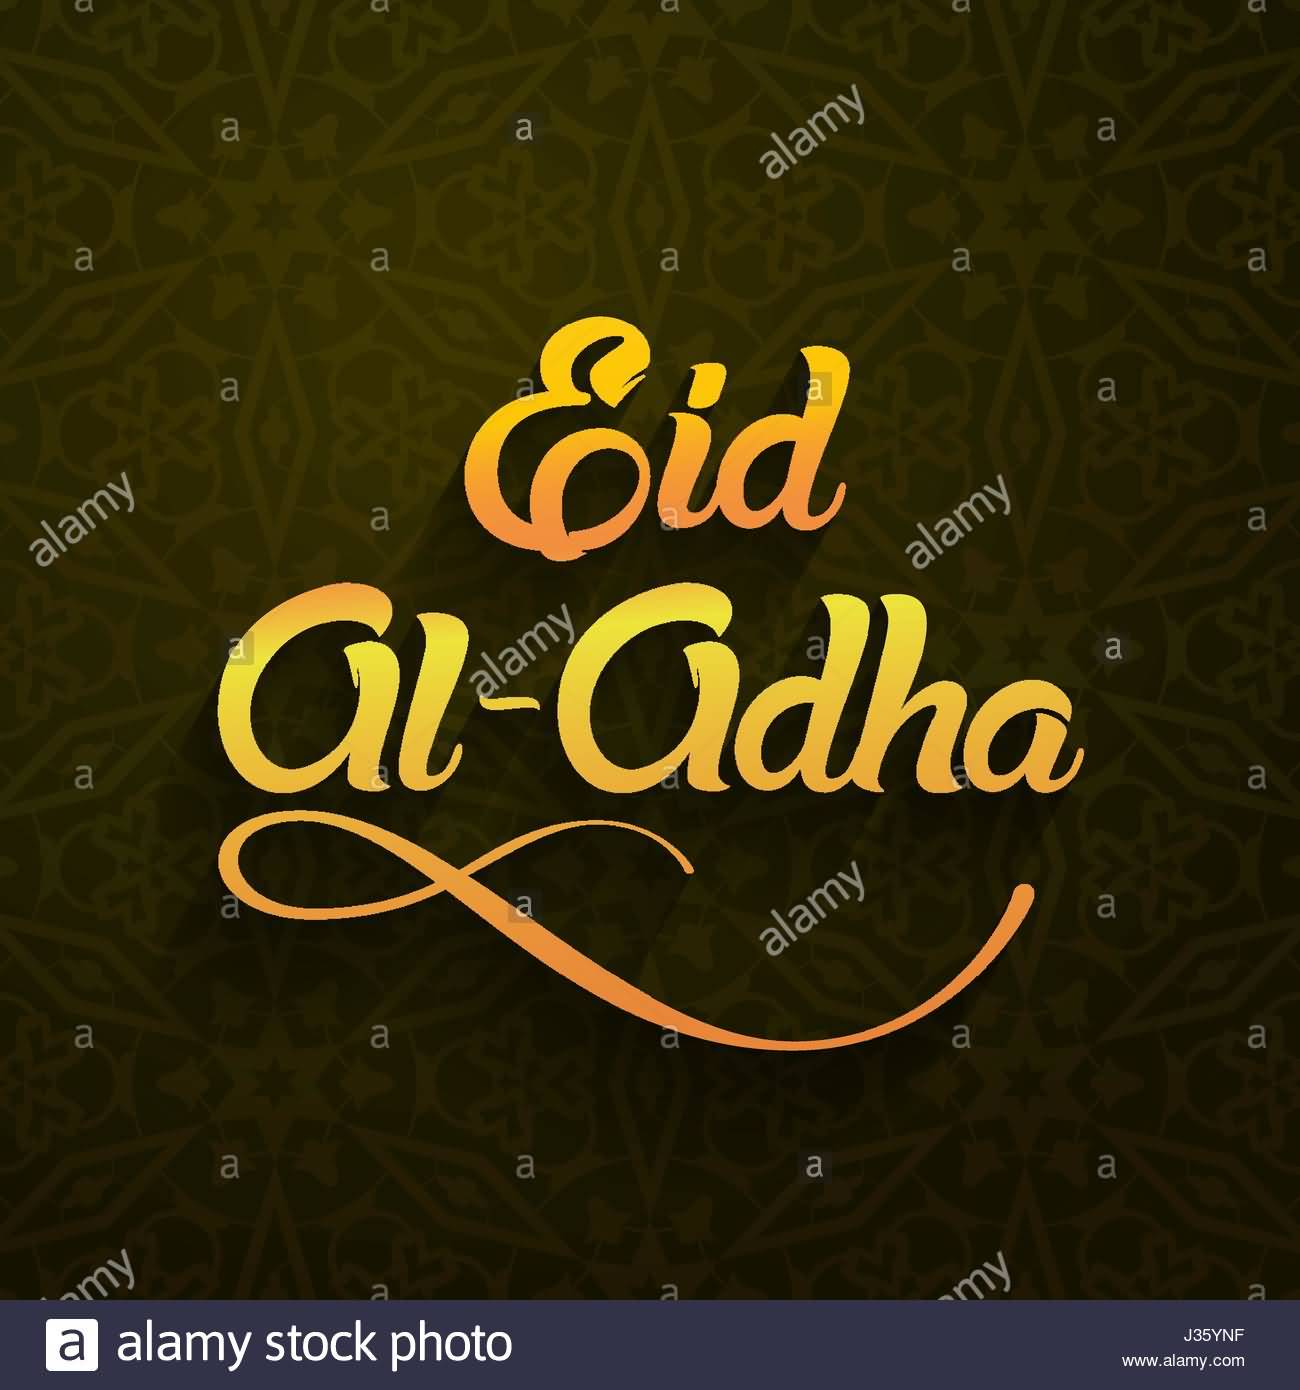 50 Best Ideas About Eid Al Adha On Askideas